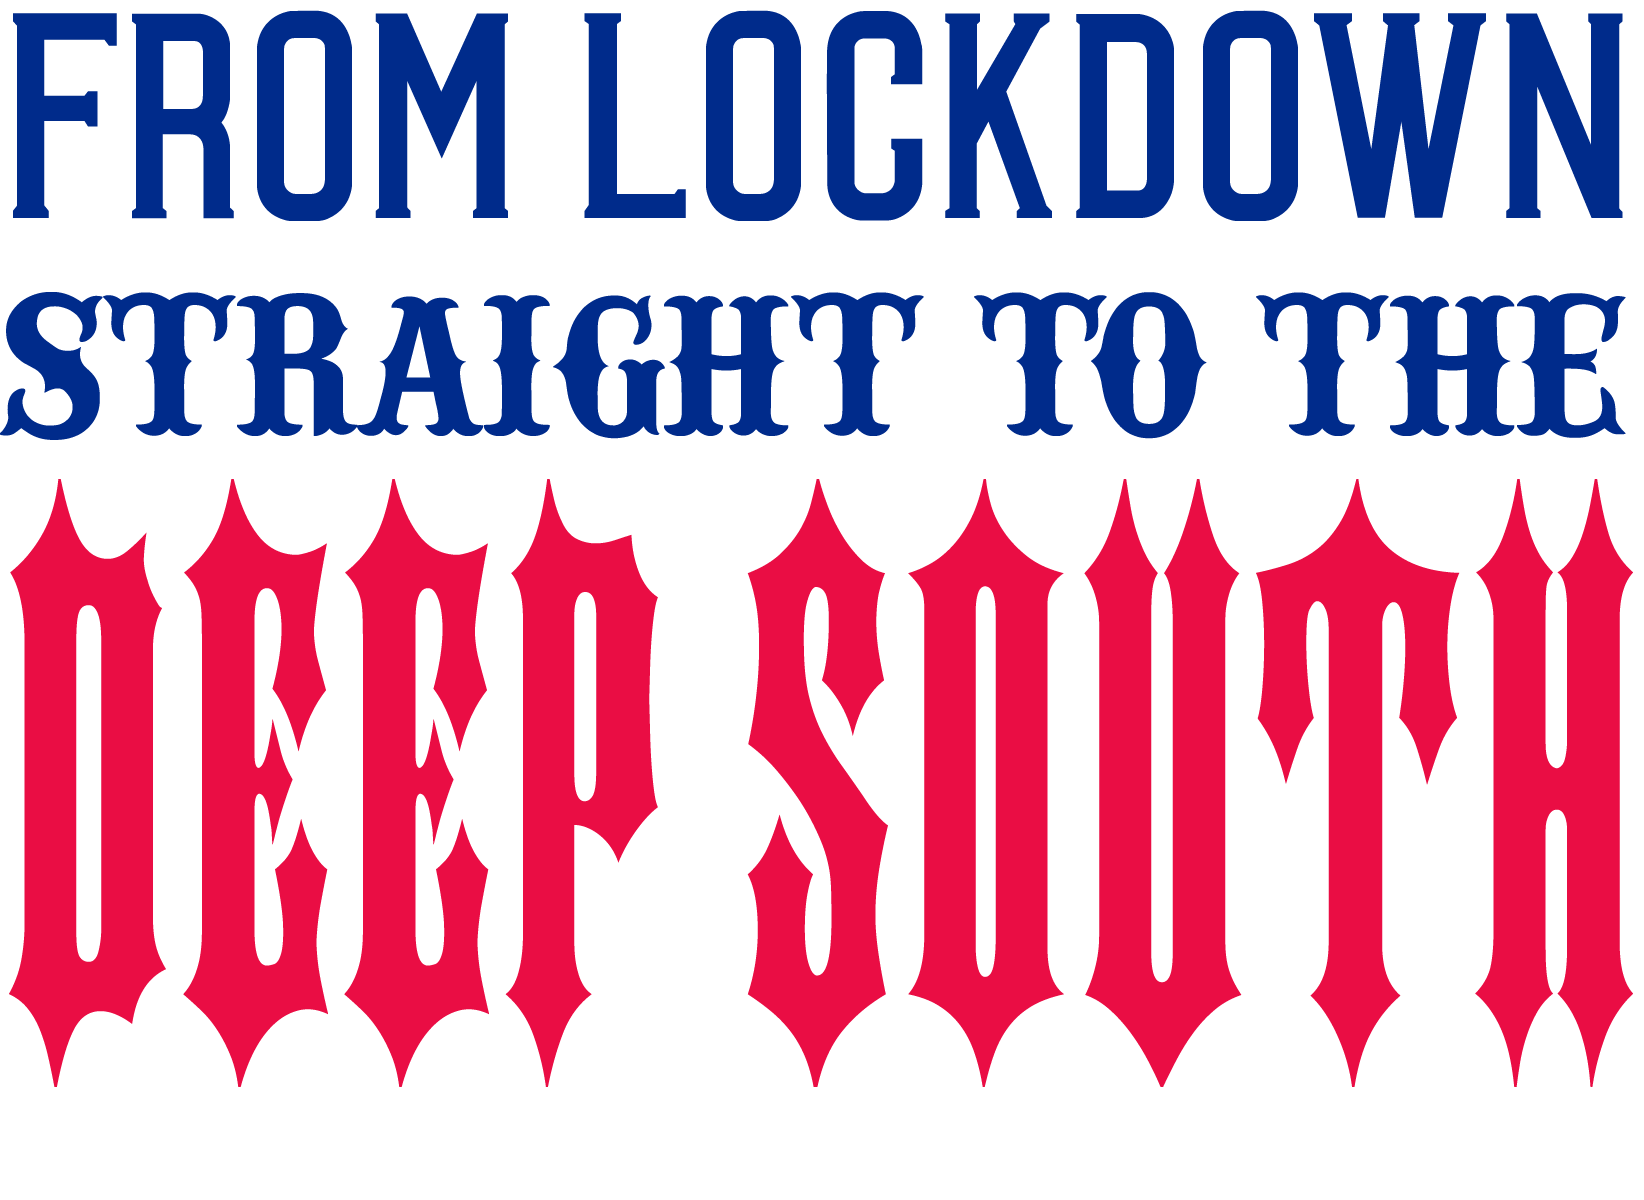 From lockdown straight to the deep south